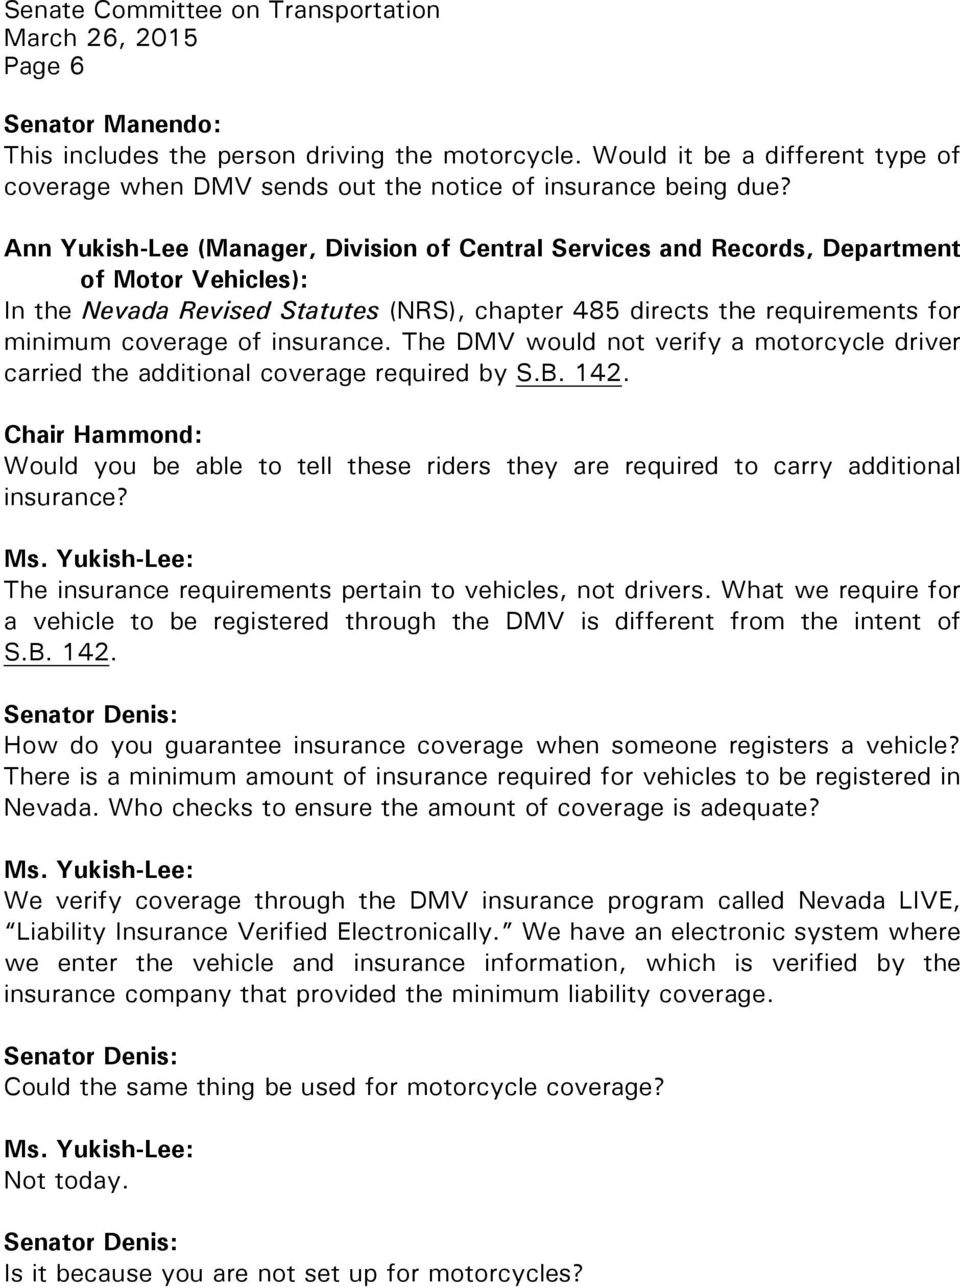 insurance. The DMV would not verify a motorcycle driver carried the additional coverage required by S.B. 142. Would you be able to tell these riders they are required to carry additional insurance?